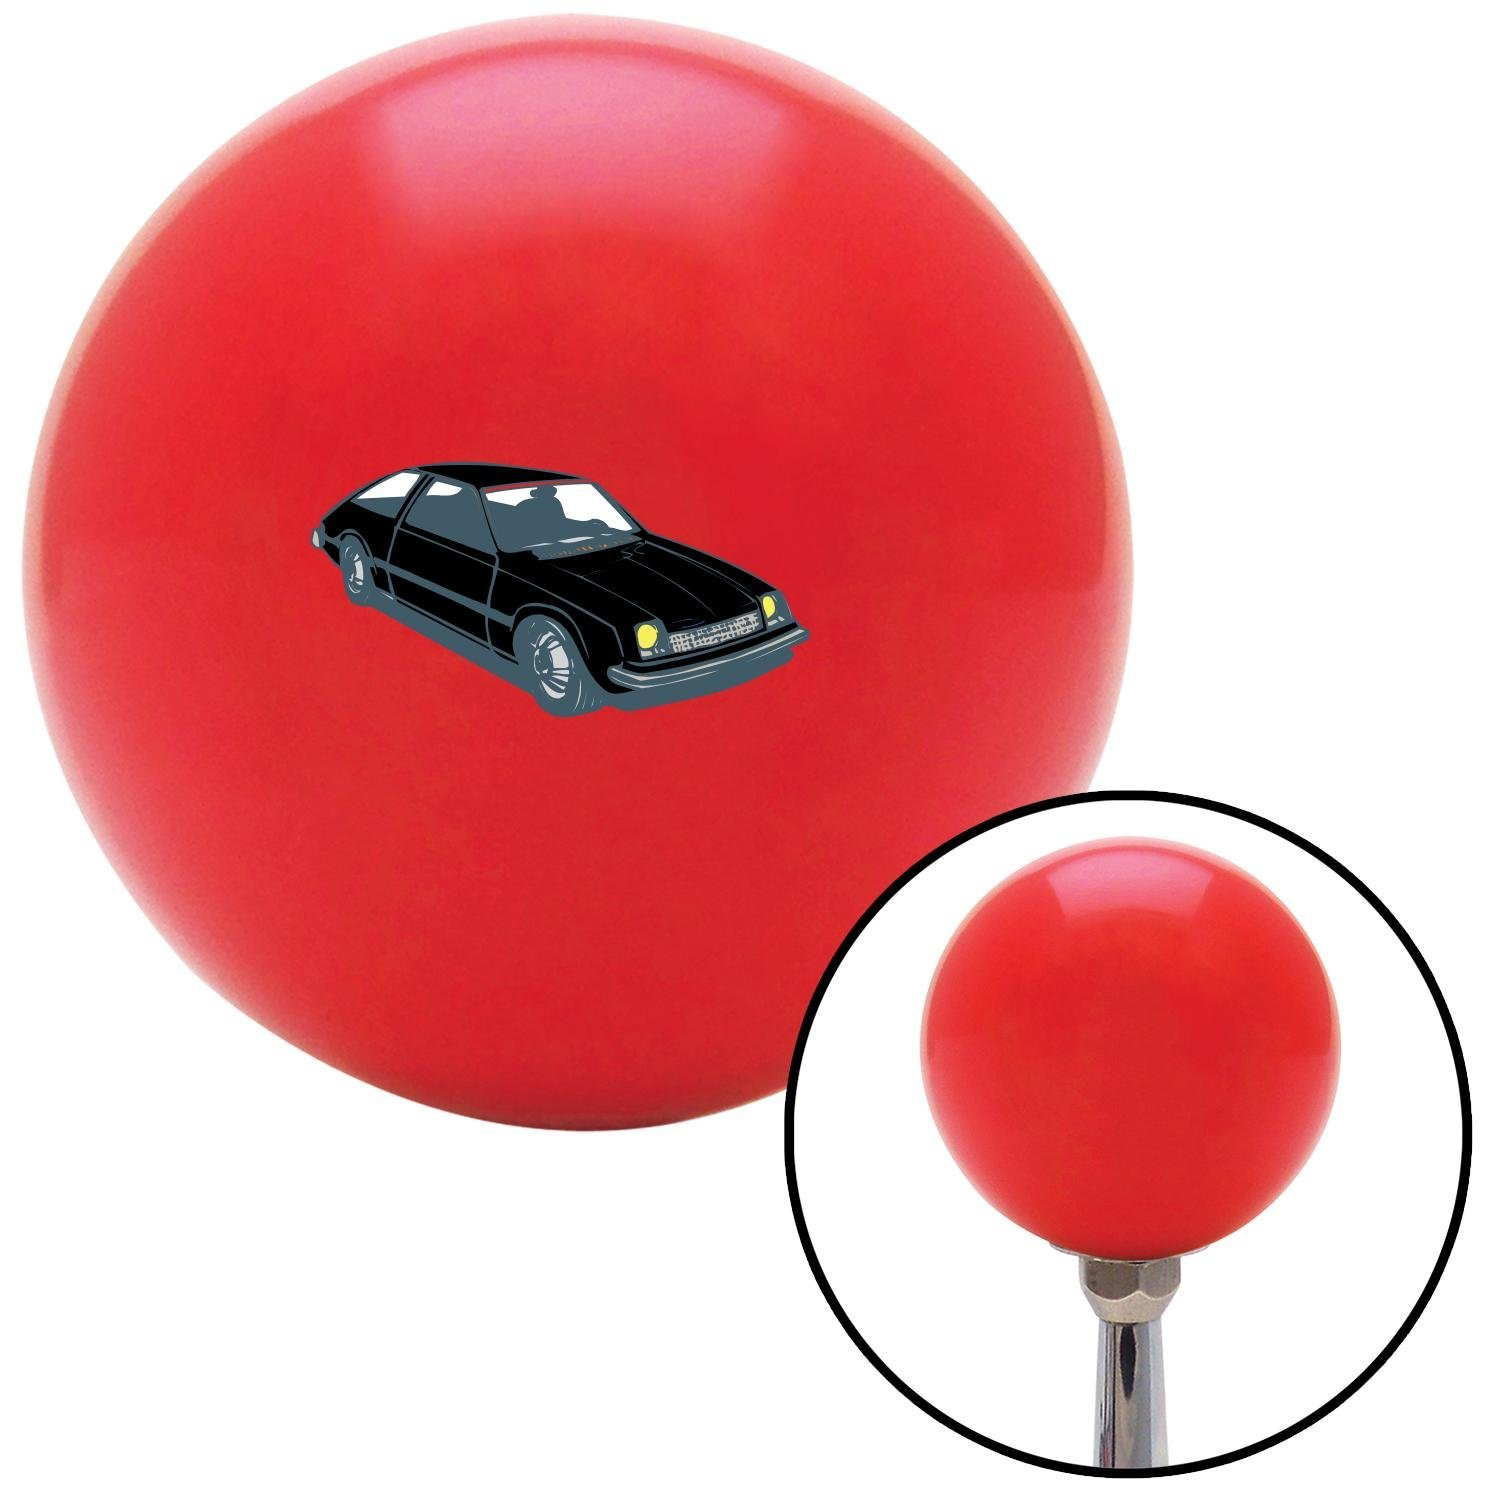 Hatchback Black American Shifter 102554 Red Shift Knob with M16 x 1.5 Insert